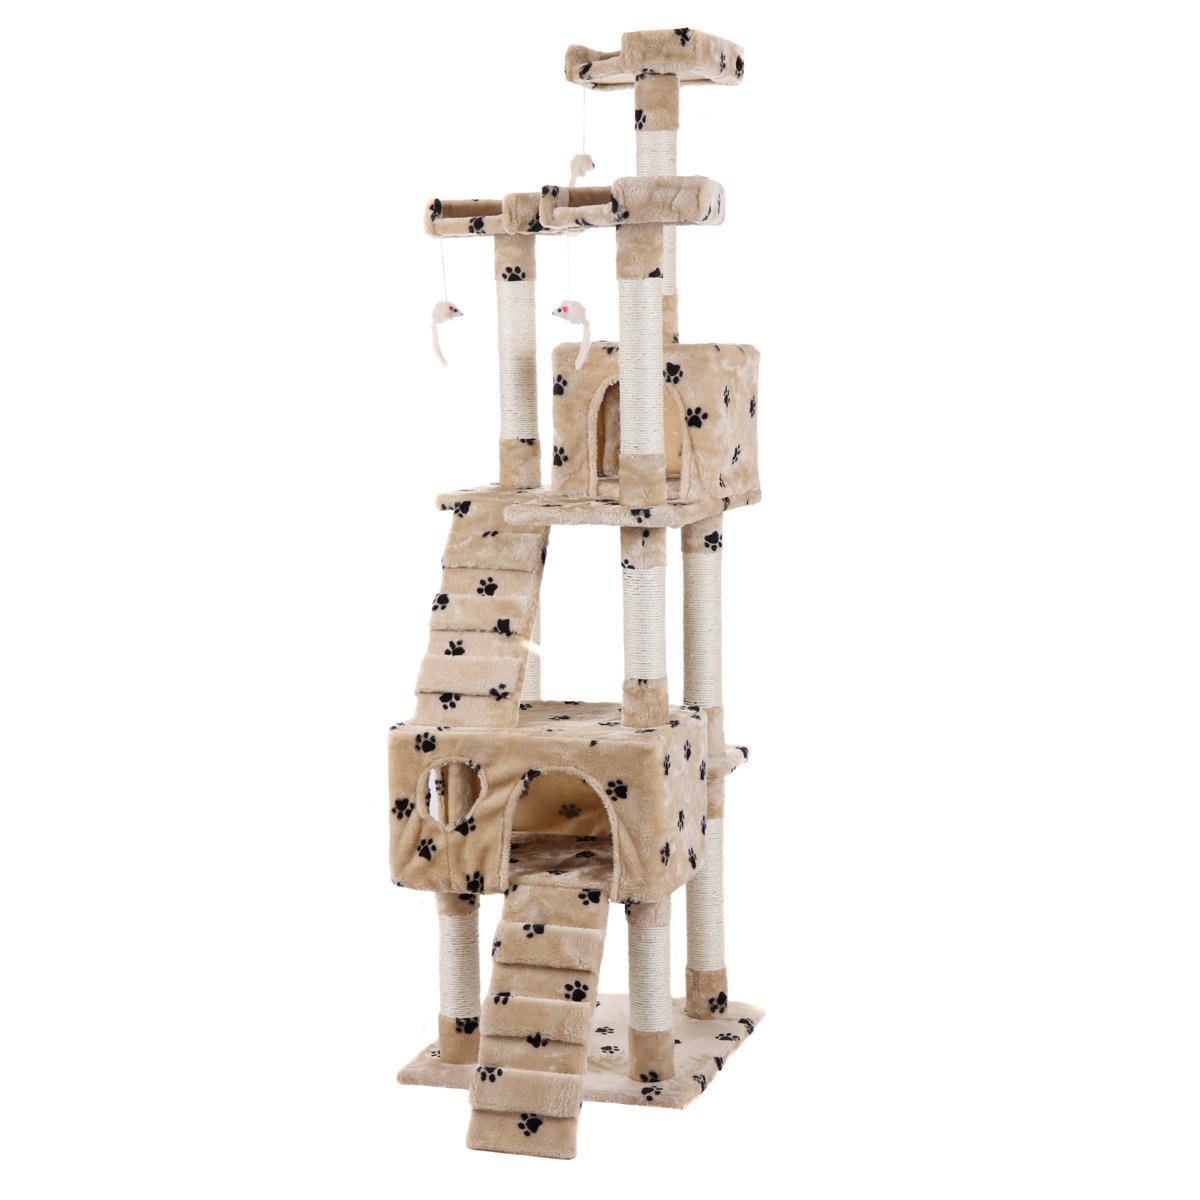 LAZYMOON 67'' Cat Tree 4-Tier Tower Condo Play House Furniture w/ Scratching posts and Toy Mouse Beige with Footprint by LAZYMOON (Image #5)